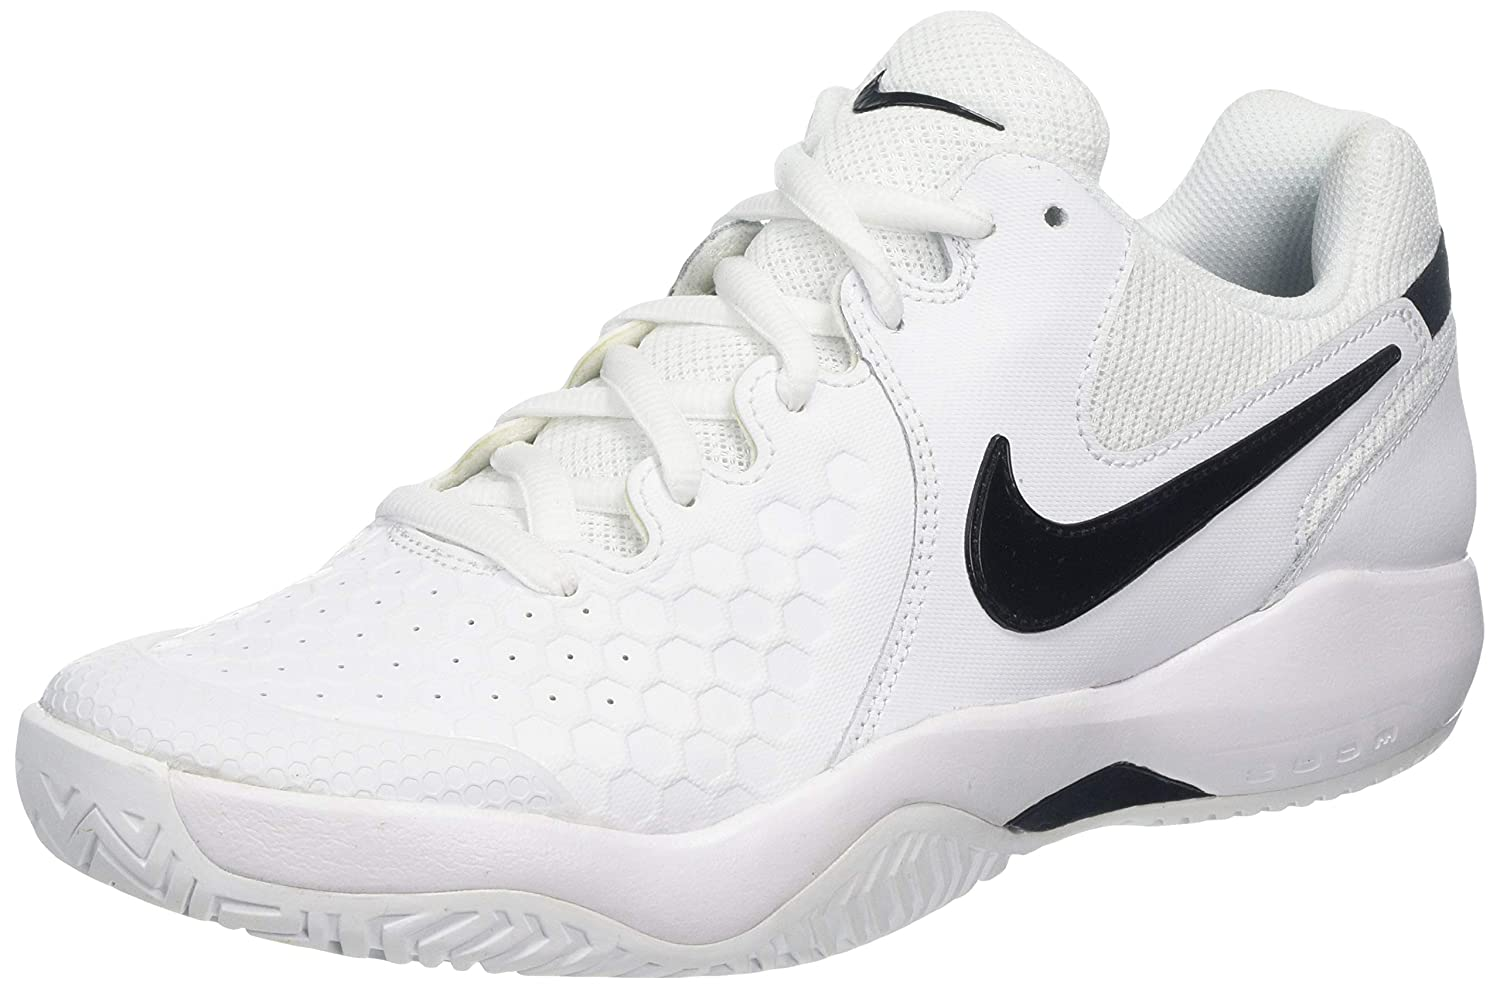 Nike Men's Air Zoom Resistance WhiteBlack Tennis Shoes 9 UK (44 EU) (10 US) (918194 102)